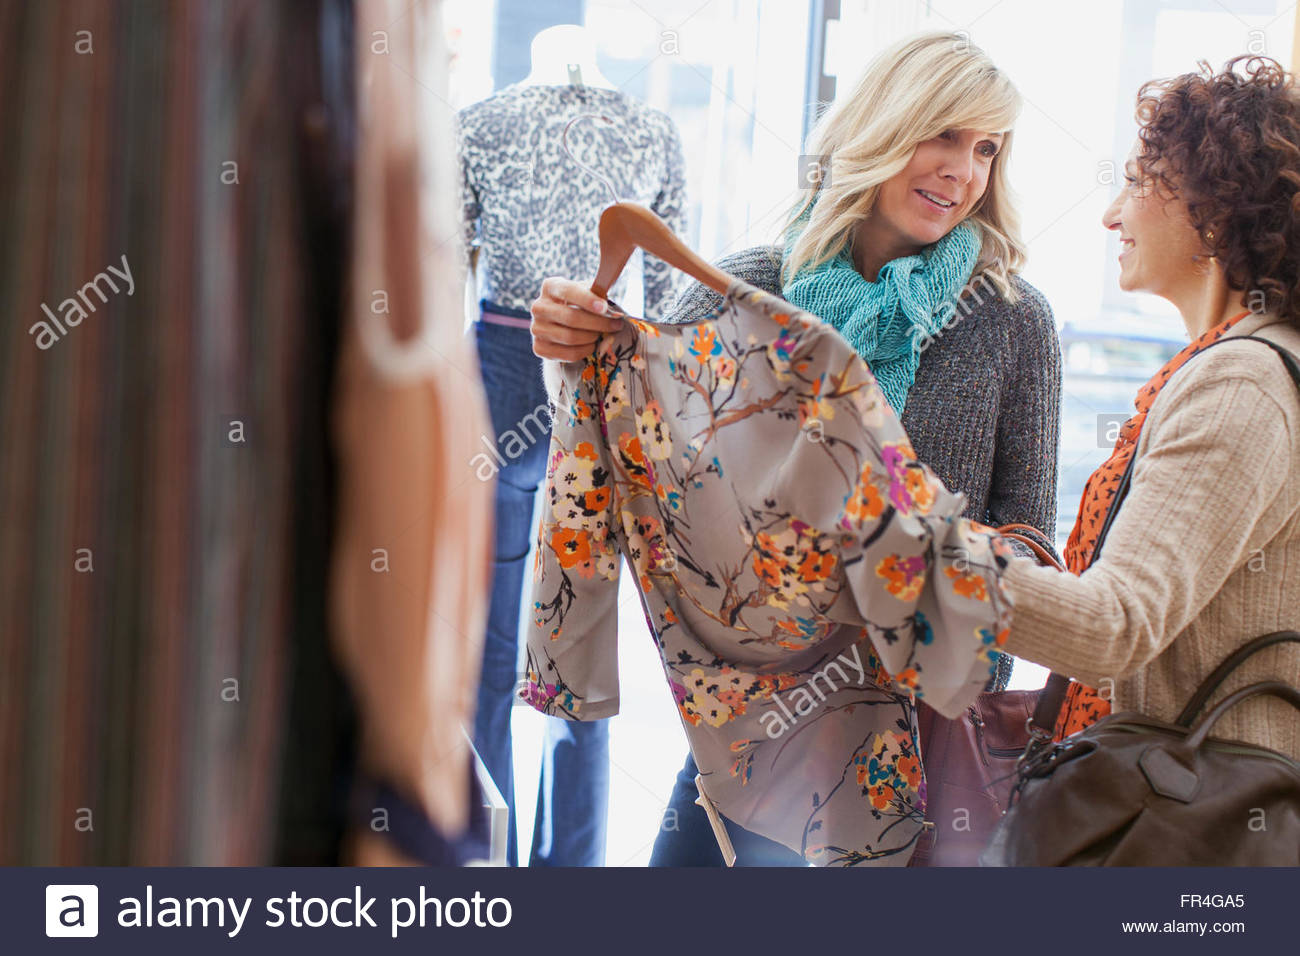 Friend asking for second opinion on clothing choice. Stock Photo